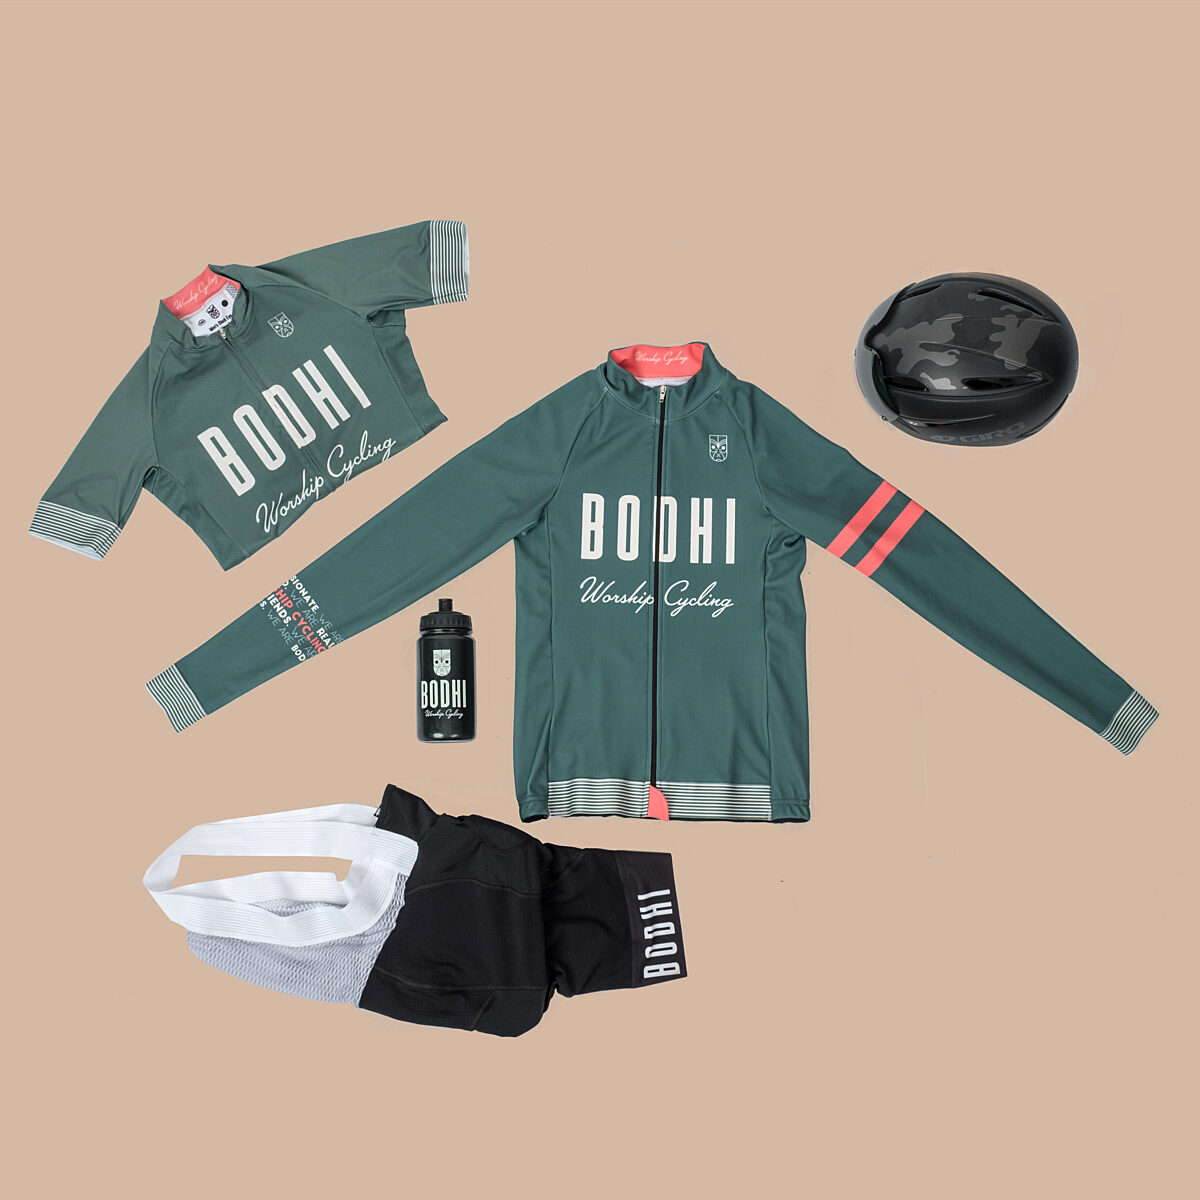 Bodhi cycling products